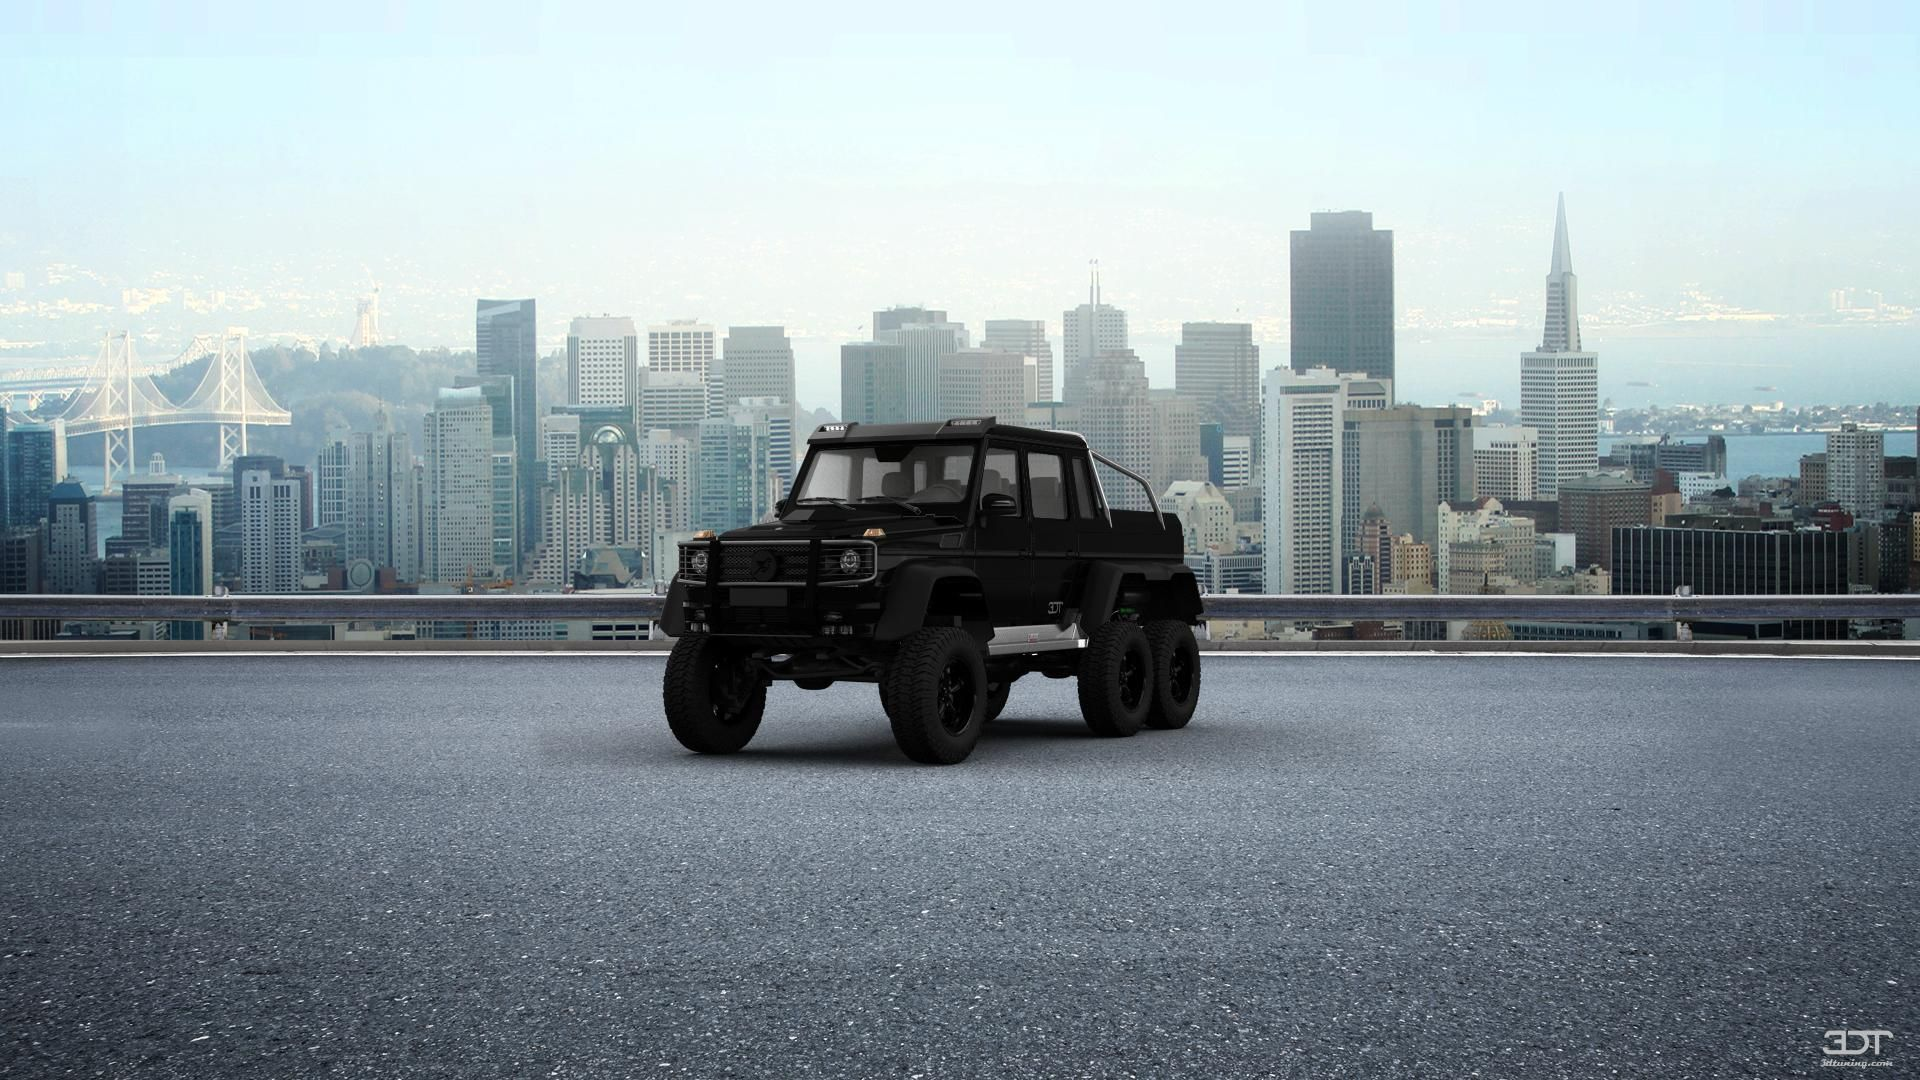 Checkout my tuning Mercedes G63AMG6x6 2013 at 3DTuning 3dtuning